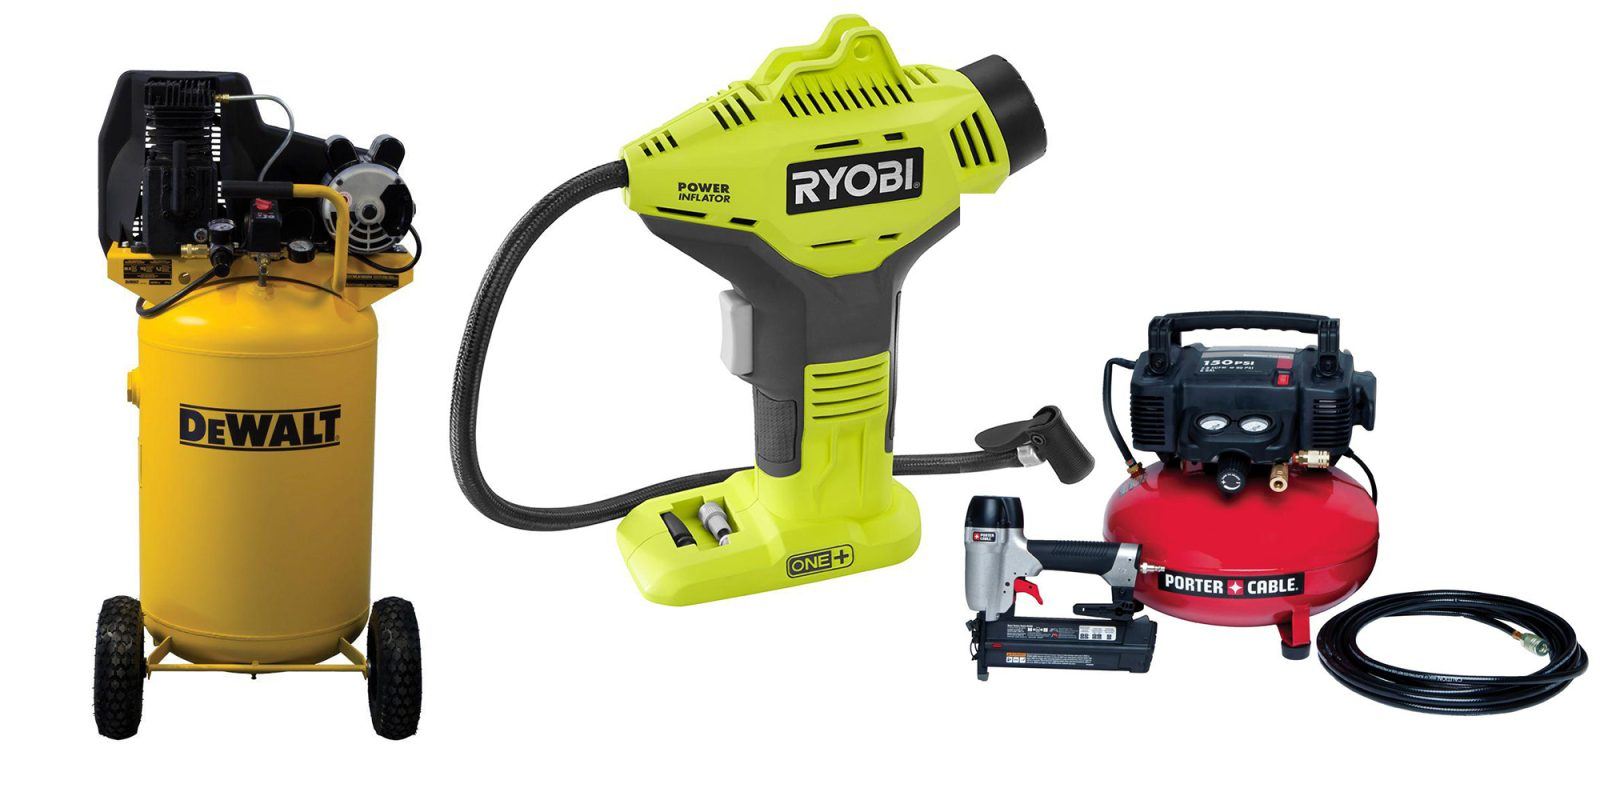 Home Depot Discounts Air Compressors Accessories More From